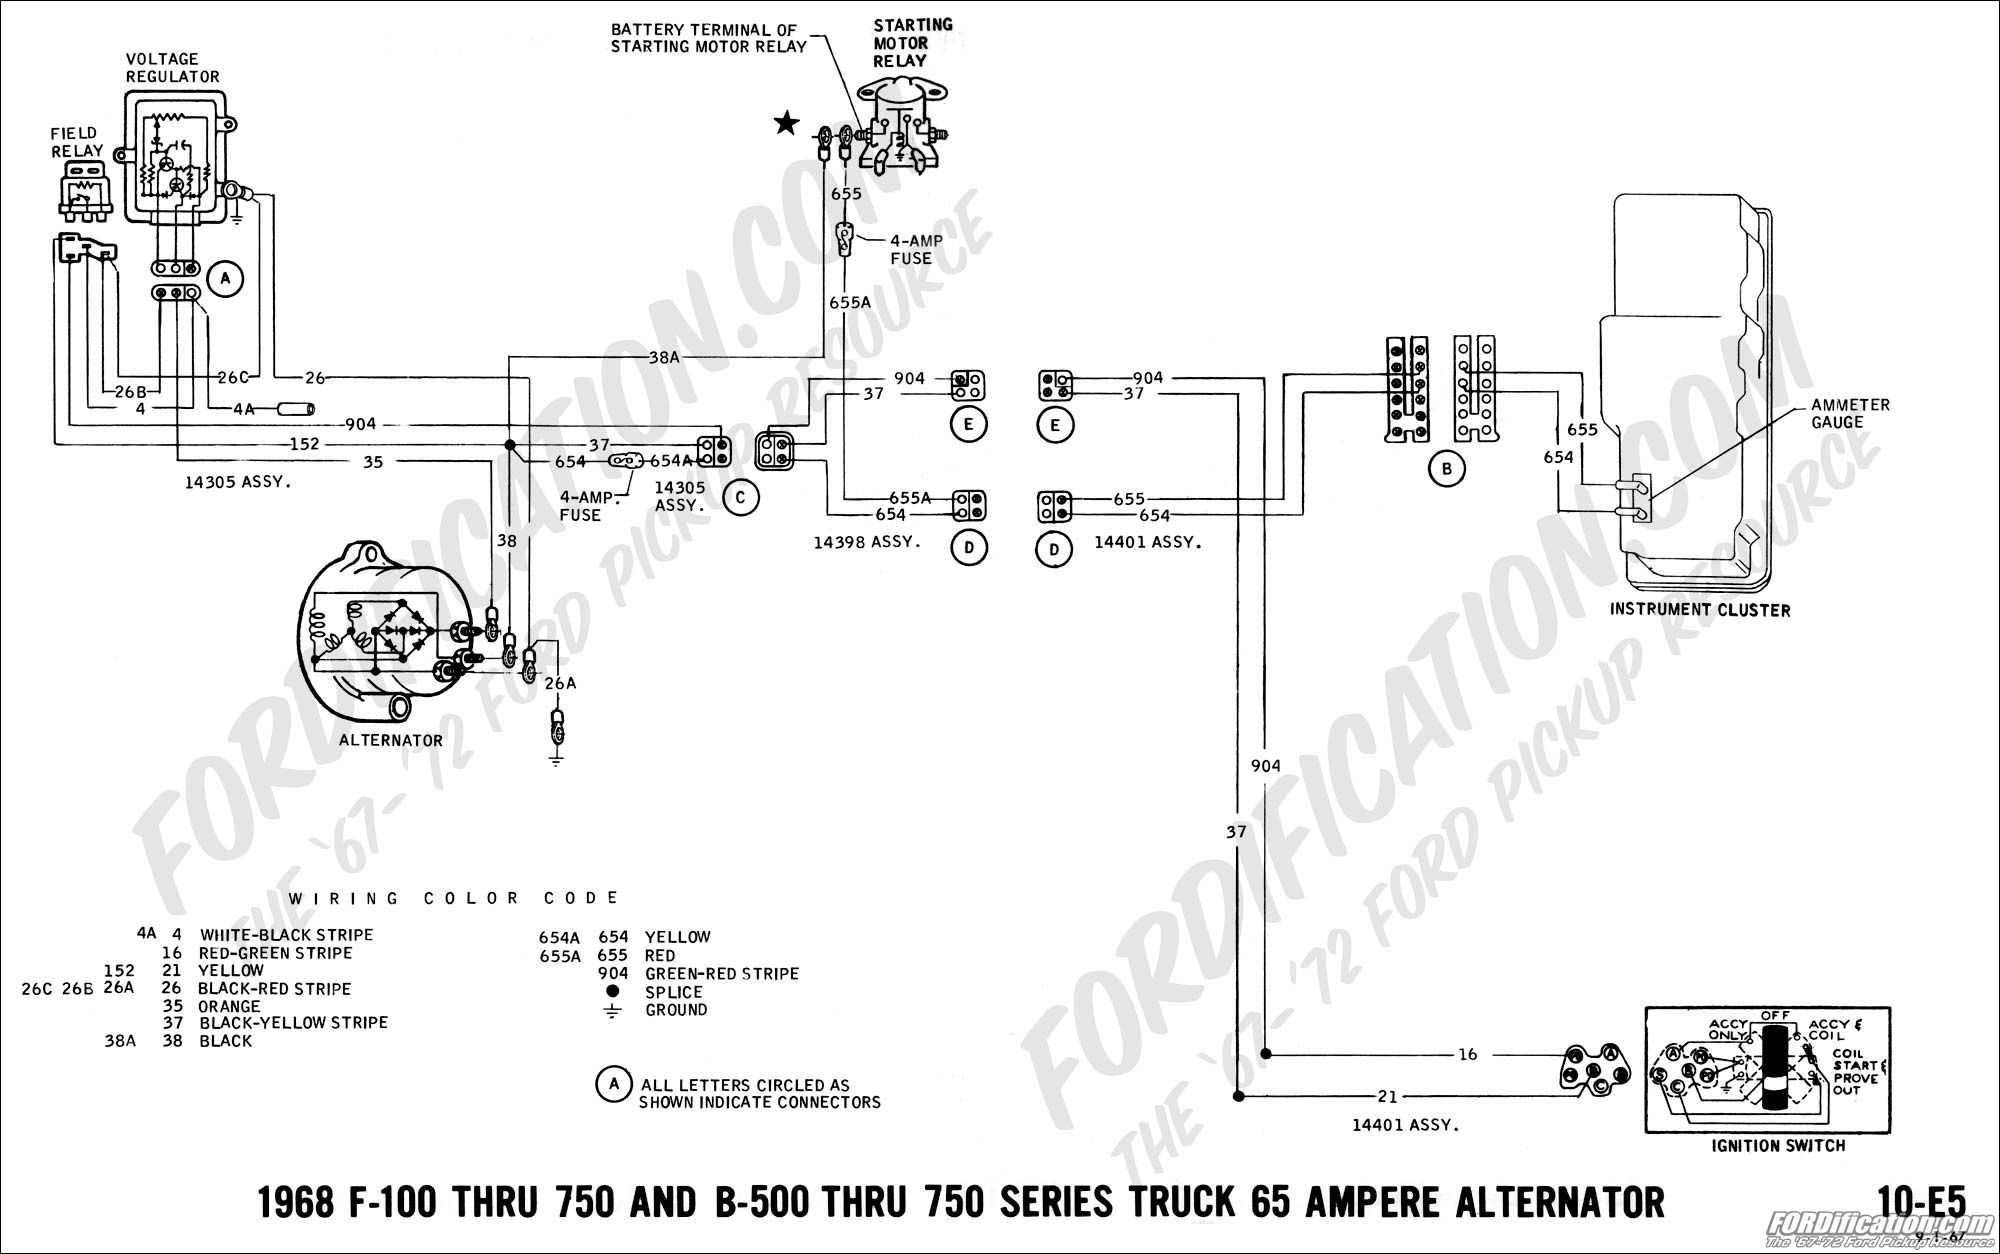 1972 Ford Truck Alternator Wiring Diagram 302 Engine Wiring Diagram Correction Correction Cfcarsnoleggio It